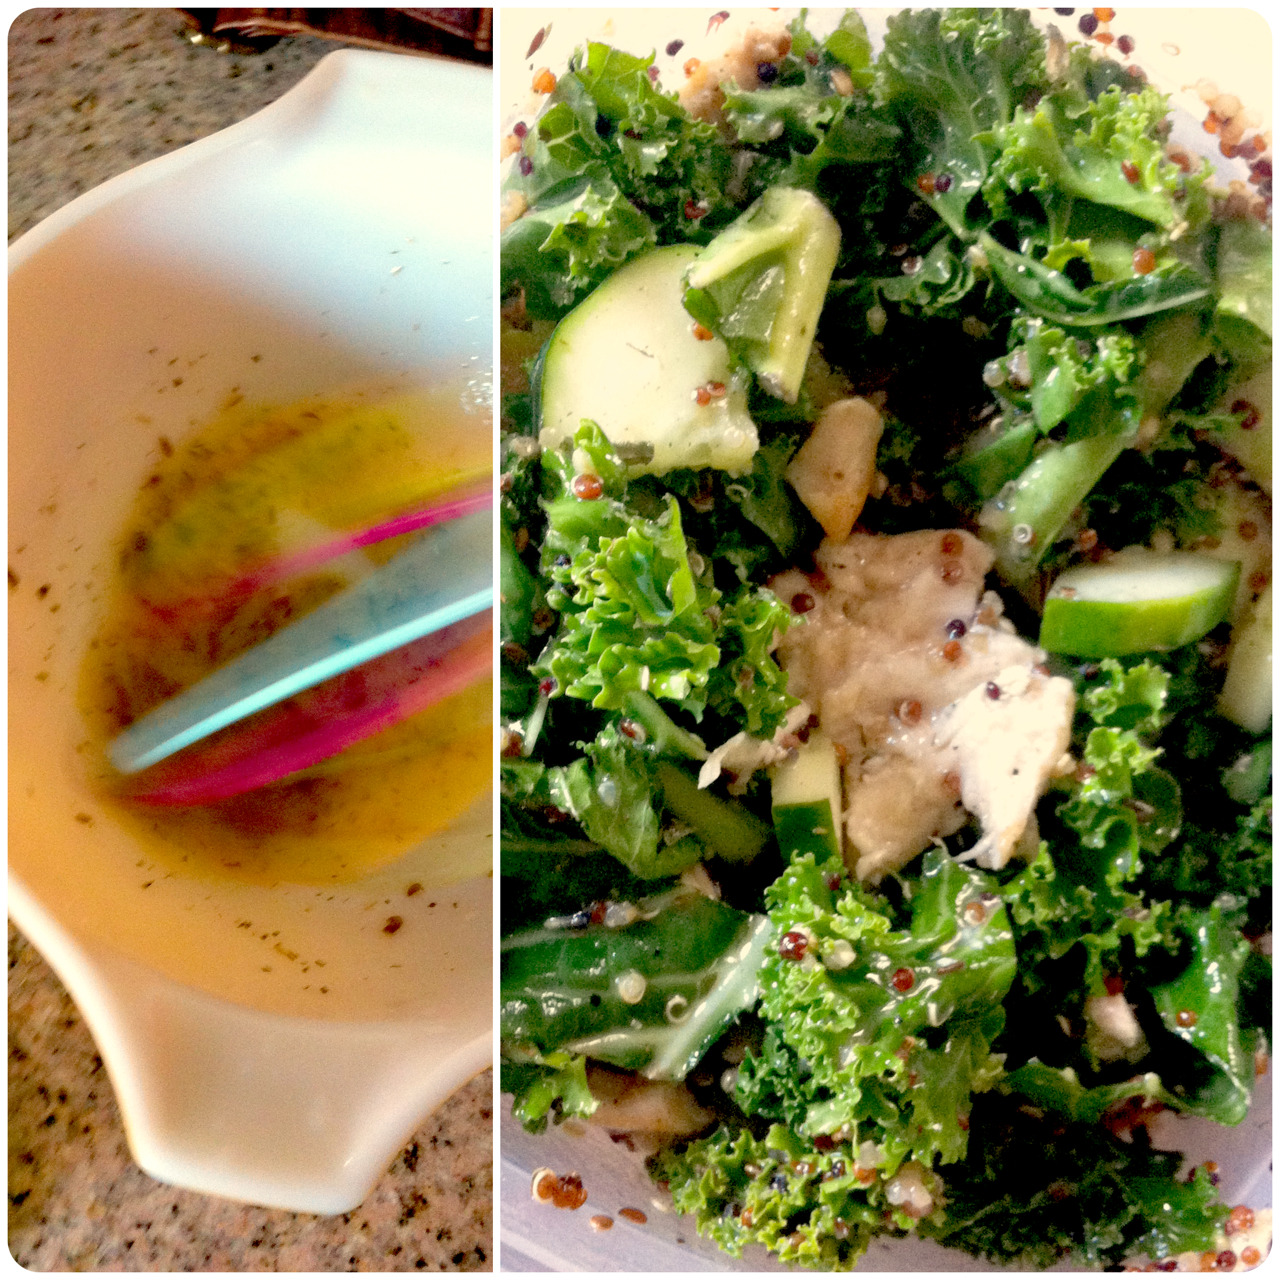 Today's lunch: kale, tri-color quinoa, leftover chicken, almonds and cucumbers in a lemon dressing. Here's how I made the quick dressing: squeeze the juice of half a lemon into a bowl; drizzle in some olive oil, add a sprinkle of dried herbs de Provence, some salt, pepper and flax seeds; whisk it all to hell; add a bit of water to thin it out if necessary; whisk again and pour over the salad. I put my salad in a plastic container and shook it very hard; the flavors marinated while I was at work and were just right when it was time for a late lunch. The kale's bitterness was tamed at that point, too. This was so satisfying and full of healthy nutrients…but also very flavorful. I was a little bummed when it was gone. The rare buds of lavender were a nice, sweet-tasting touch.